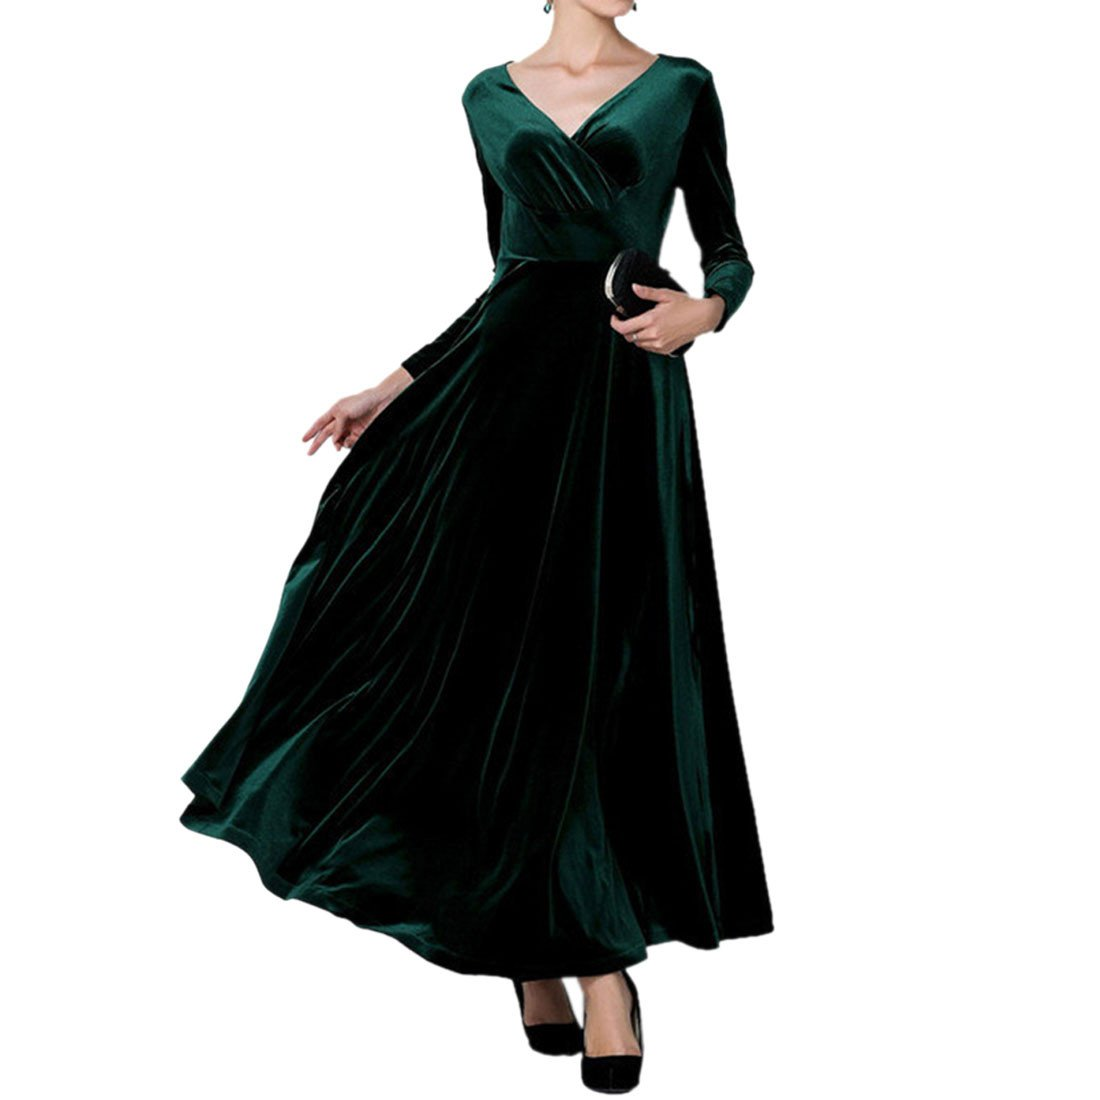 Velvet Elegant Gorgeous Women Long Sleeve High waist Maxi Party Ball Dress S-3XL WINSON